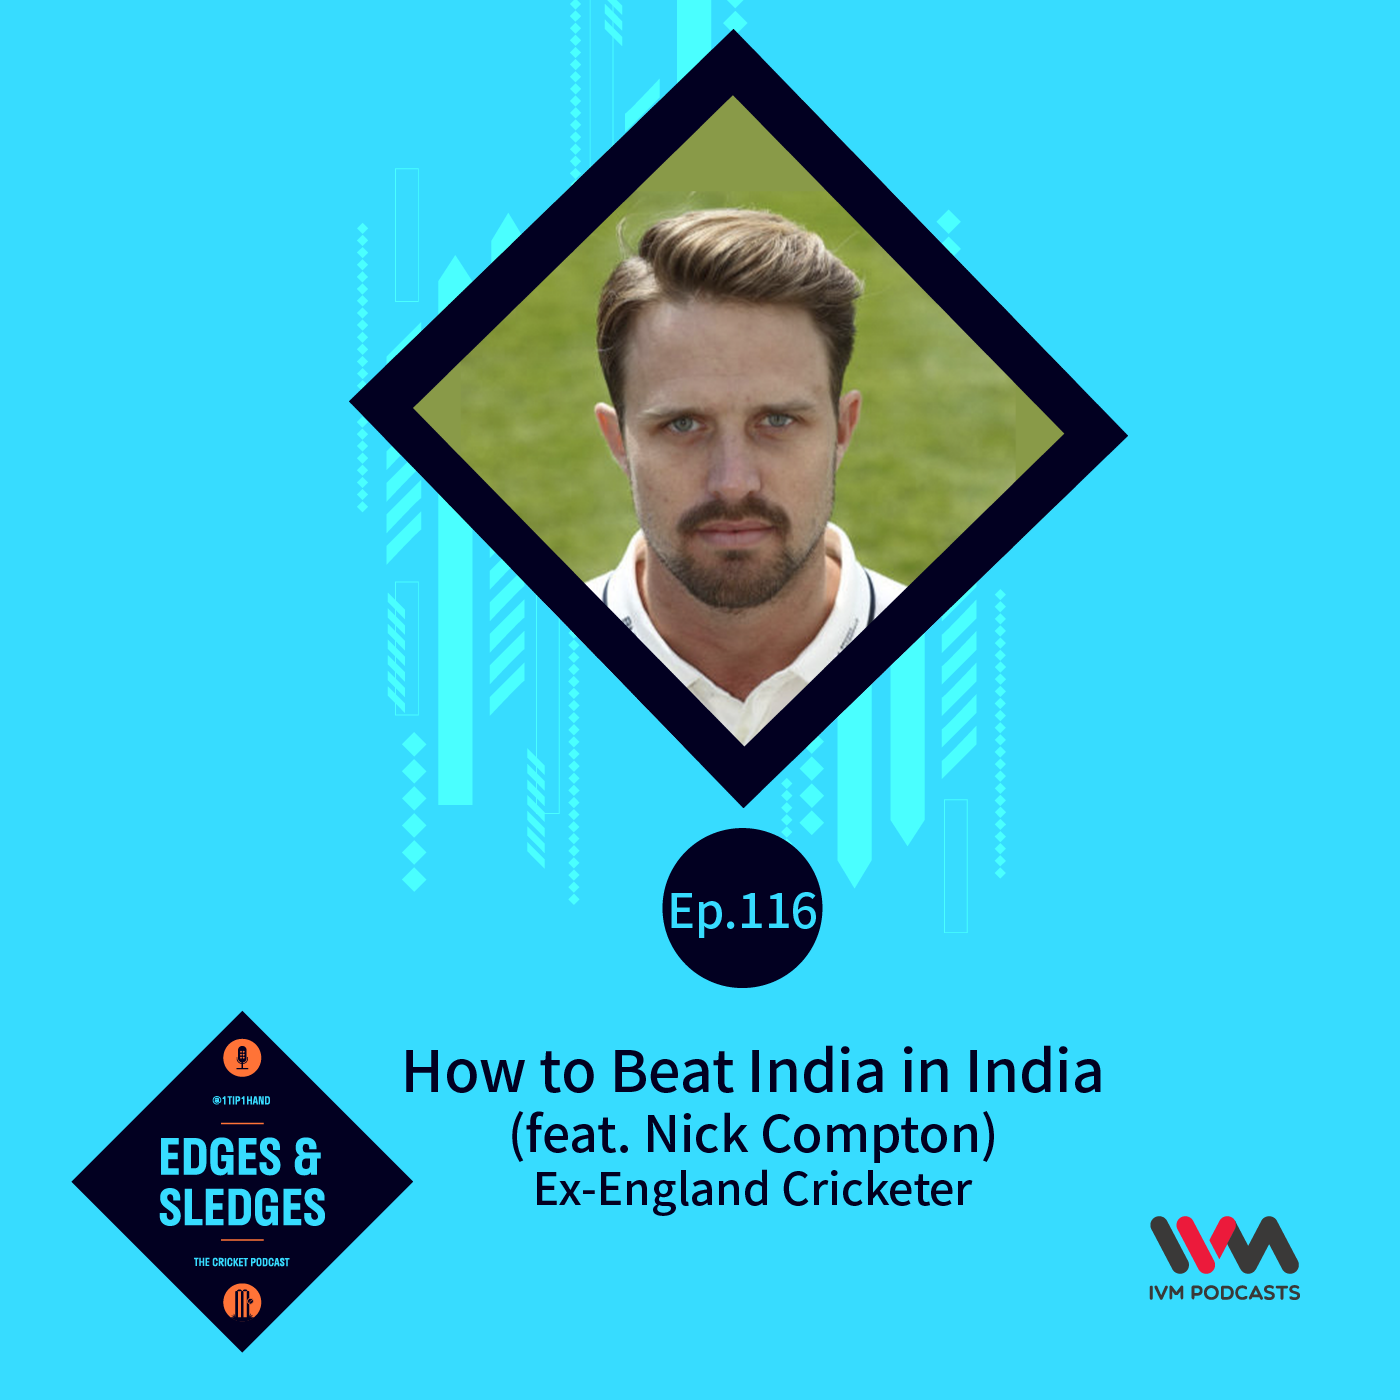 Ep. 116: How to Beat India in India (feat. Nick Compton)